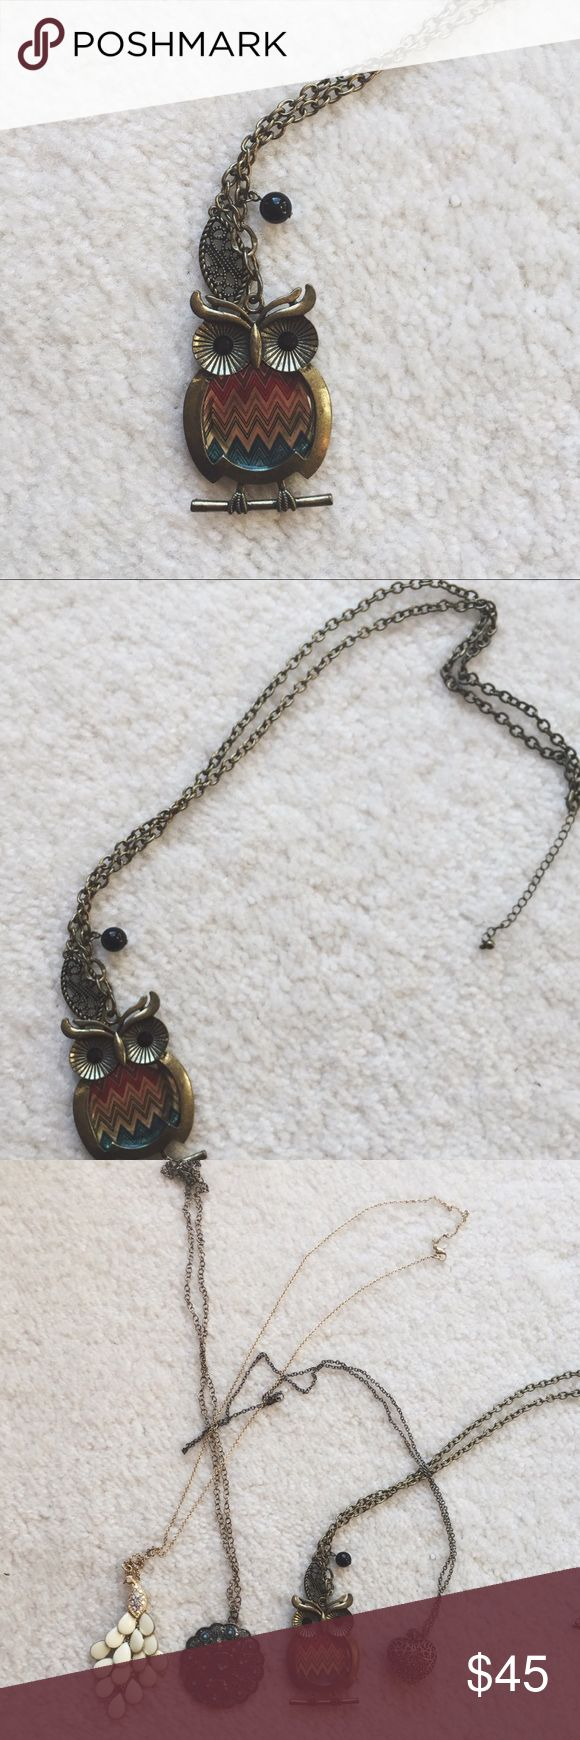 "Vintage multi-colored long owl necklace ⋈ Vintage long owl necklace with black bead eyes ⋈ Body of the owl is a colorful chevron print - chain is 16""/32"" total with a 2"" adjustable portion ⋈ Unknown gold metal, has experienced some discoloration and wear ⋈ Price is negotiable! Vintage Jewelry Necklaces"